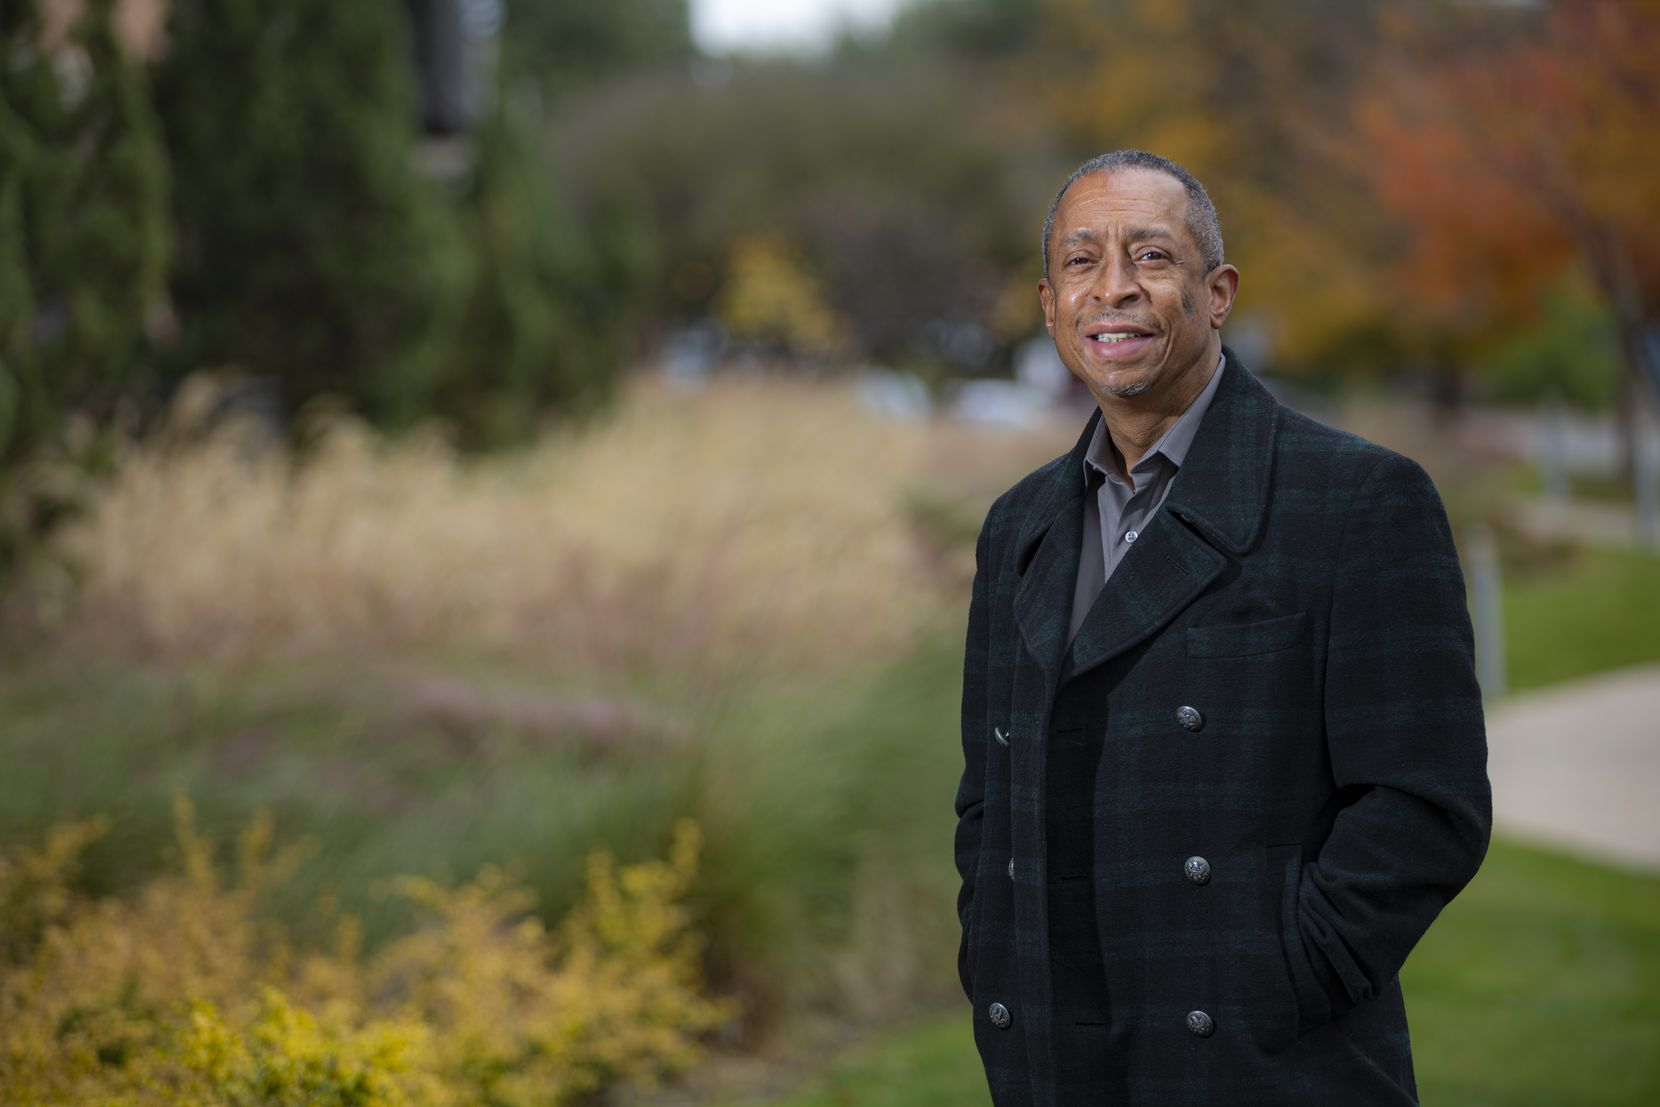 """Keith Wilson struggled with trying to quit smoking for years before enrolling in UT Southwestern's smoking cessation program. """"It always bothered me that I couldn't do a simple thing like stopping smoking,"""" he says. """"There's medicine and a team behind me now."""""""